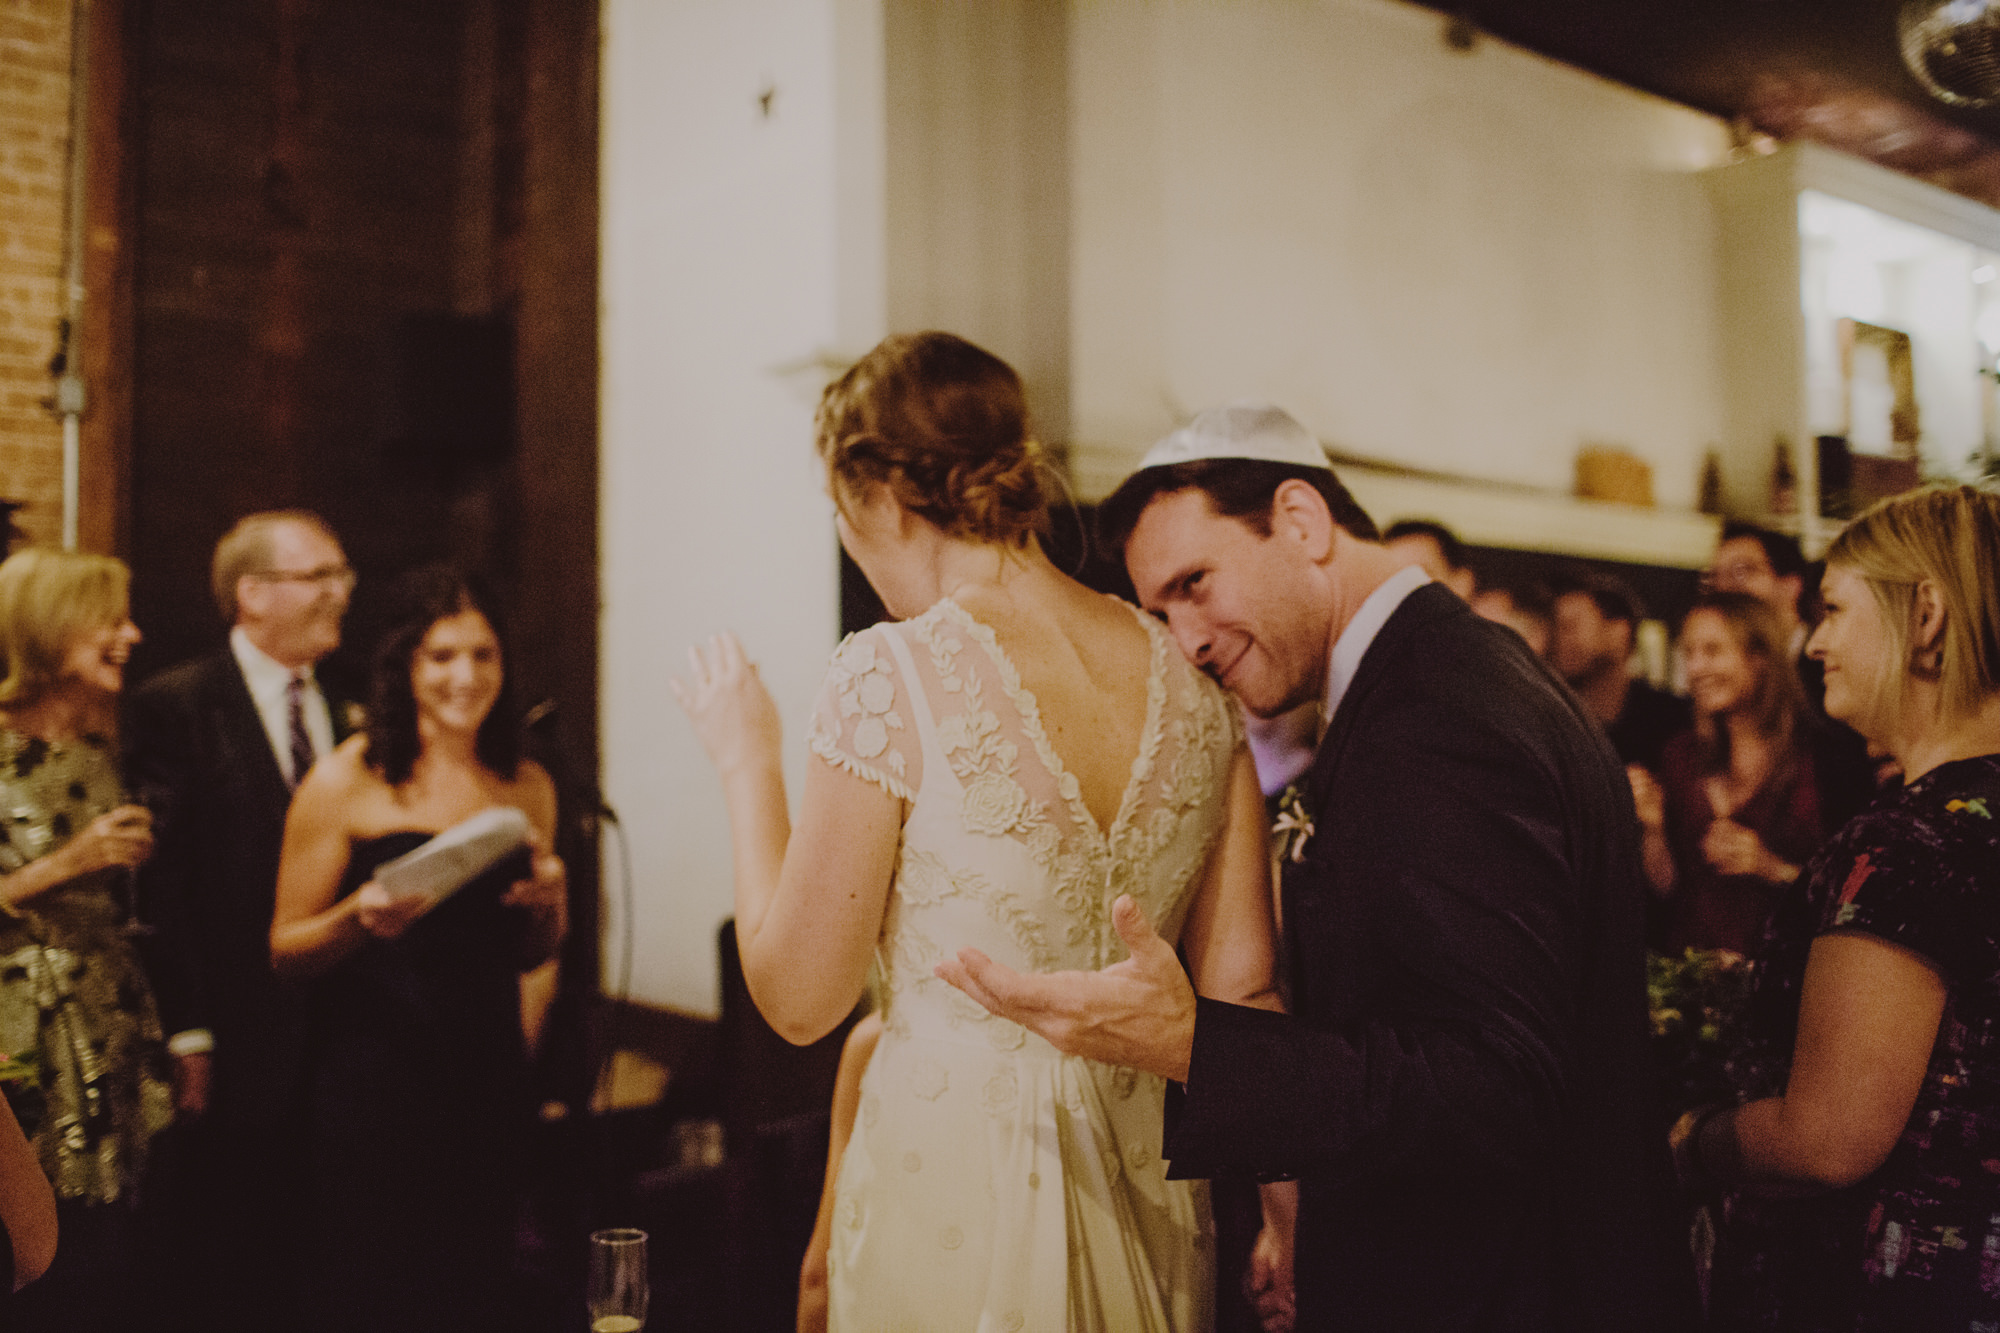 brooklyn_wedding_flatbushfarm_sammblake_045.jpg